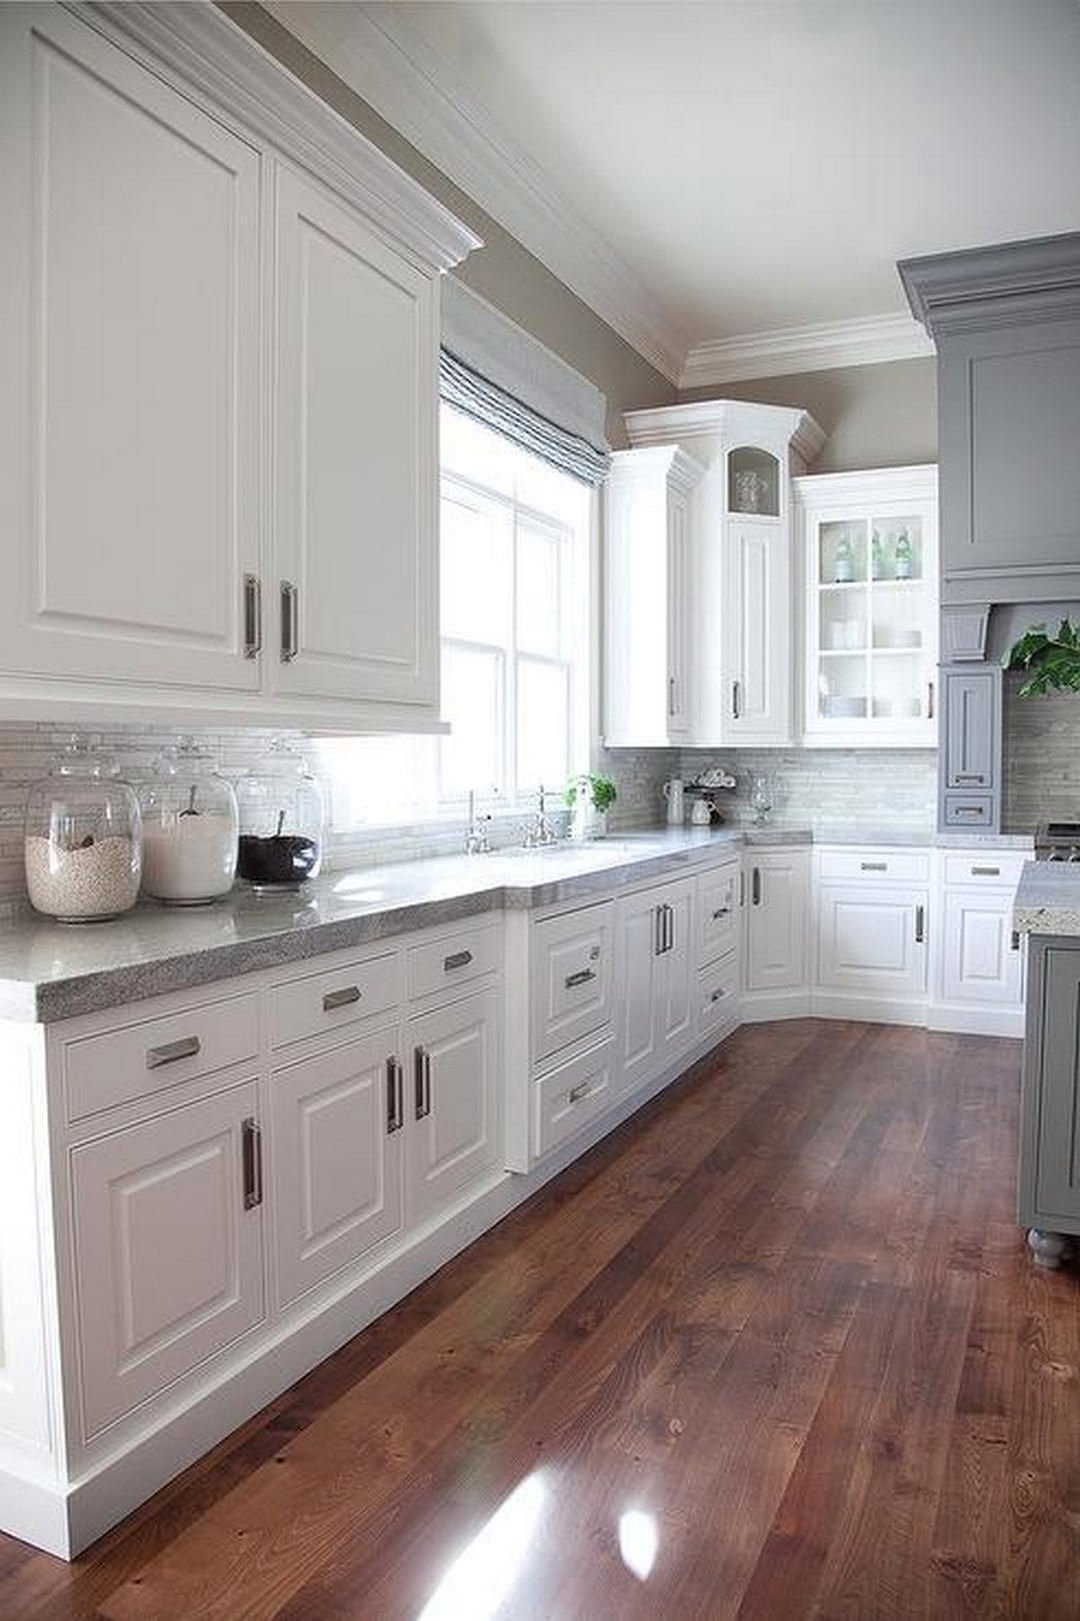 53 pretty white kitchen design ideas | kitchen design, kitchens and